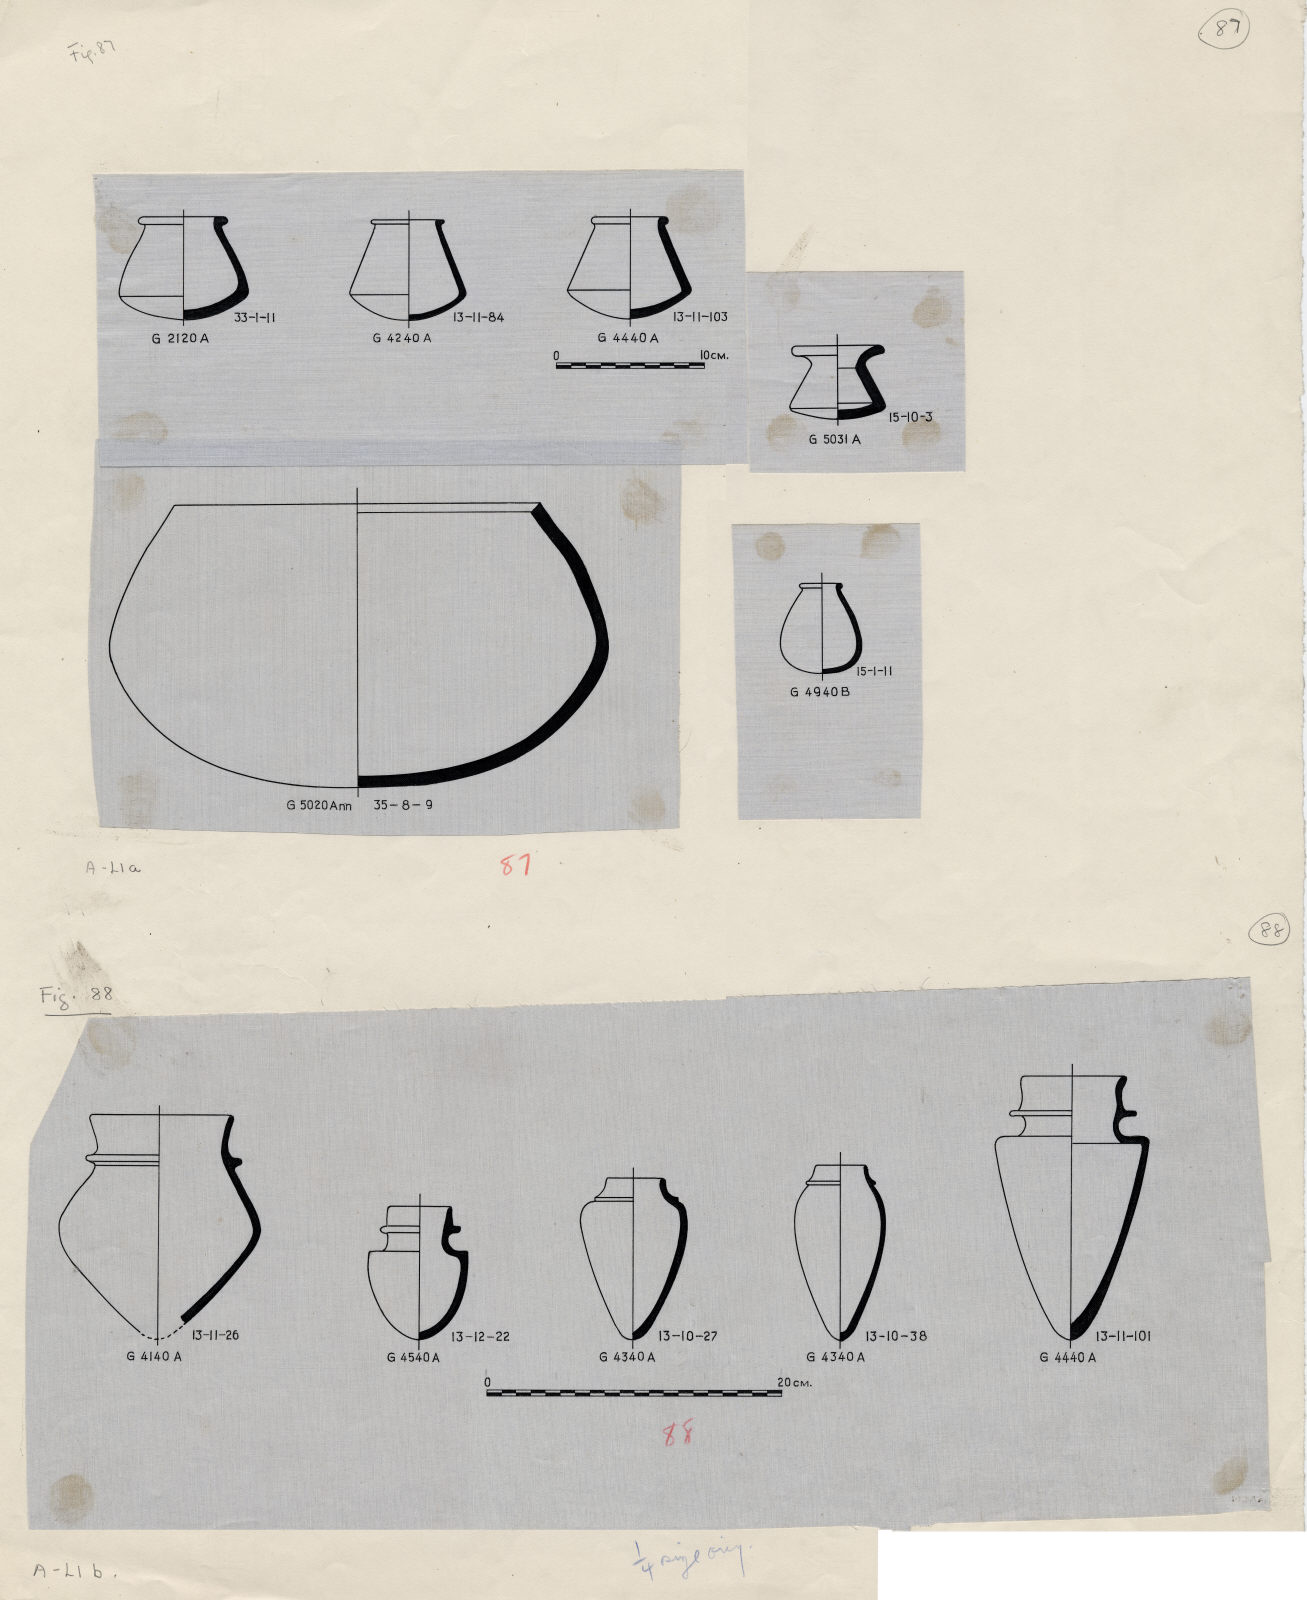 Drawings: Pottery from G 2120, G 4140, G 4240, G 4340, G 4440, G 4540, G 4940, G 5020-Annex, G 5031